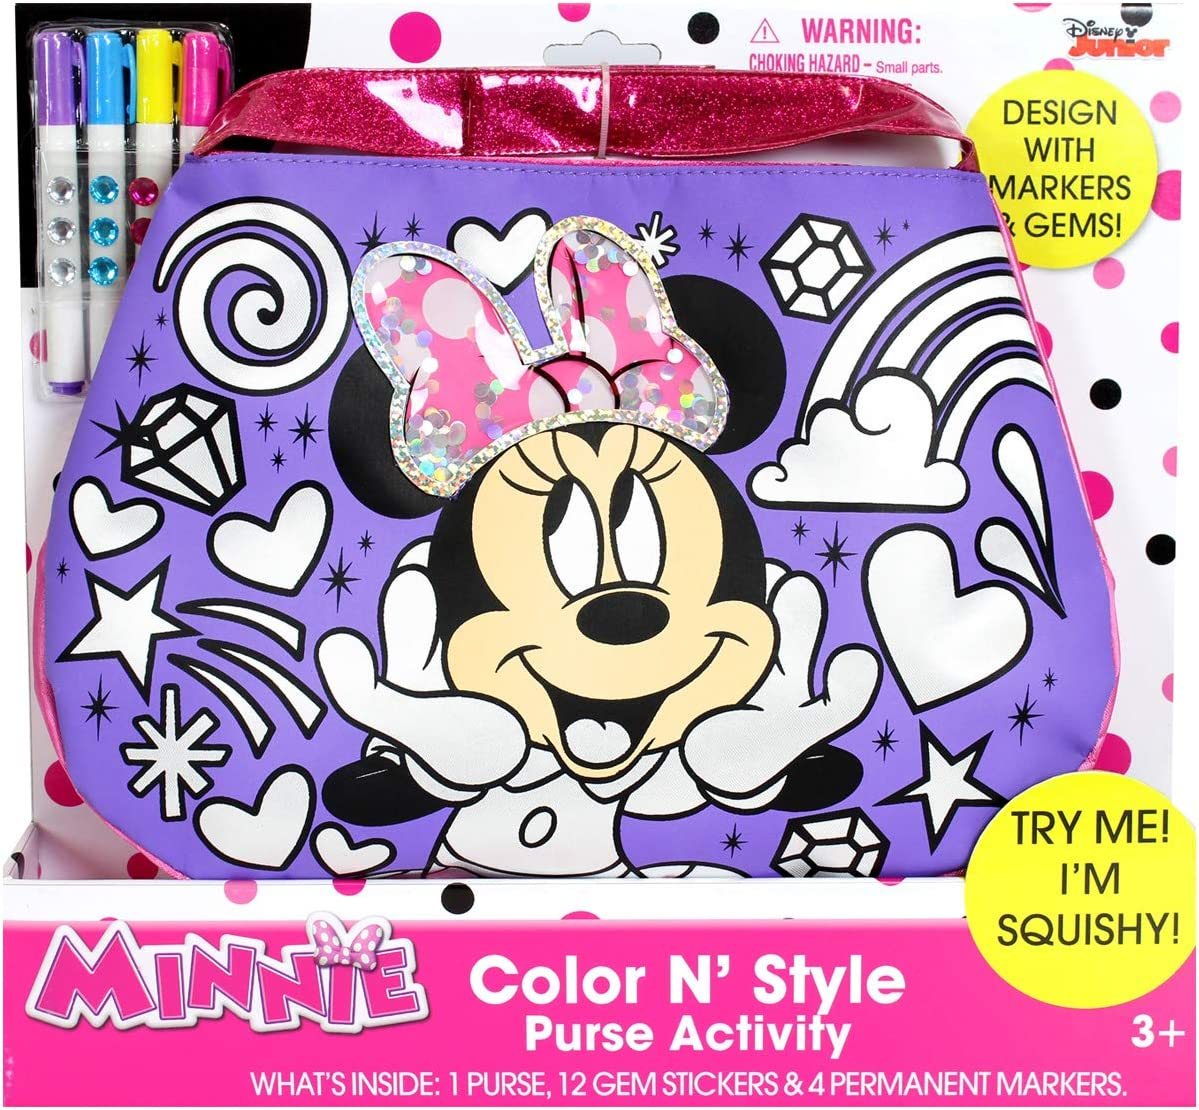 Tara Toys Minnie Mouse Color N Style Fashion Purse